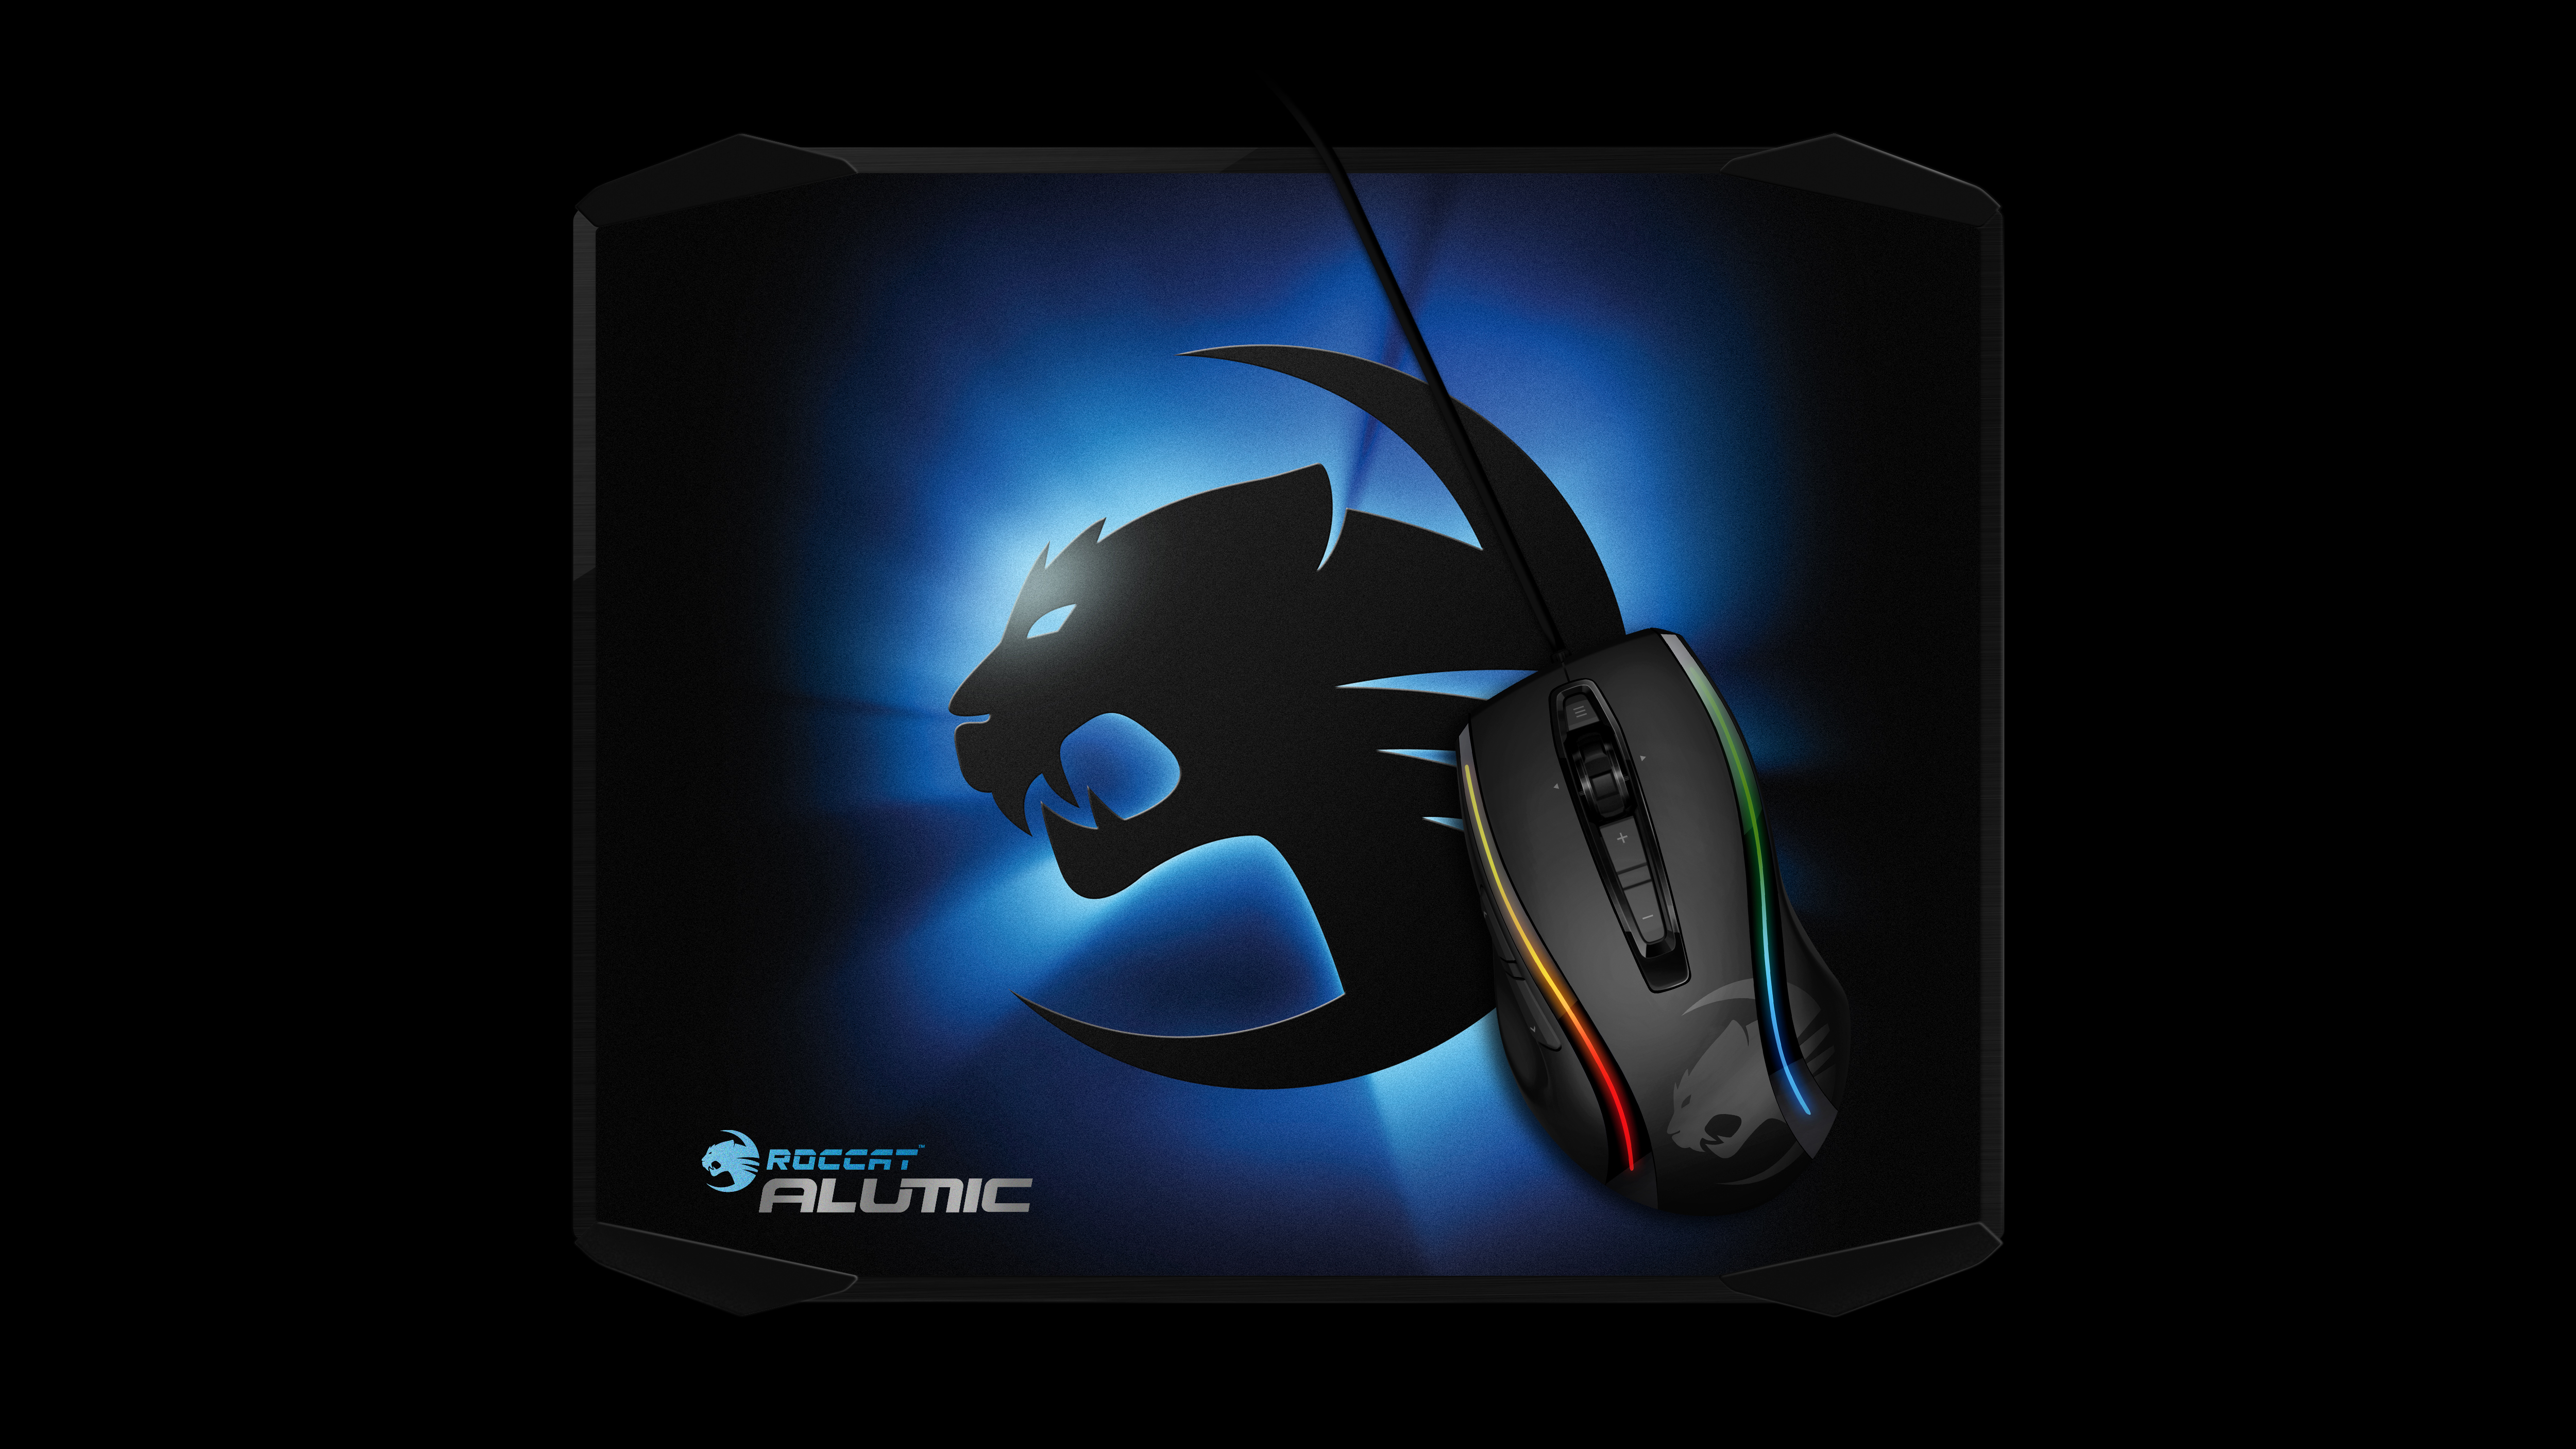 ROCCAT-Alumic_Top_DarkGlow_Kone[+]